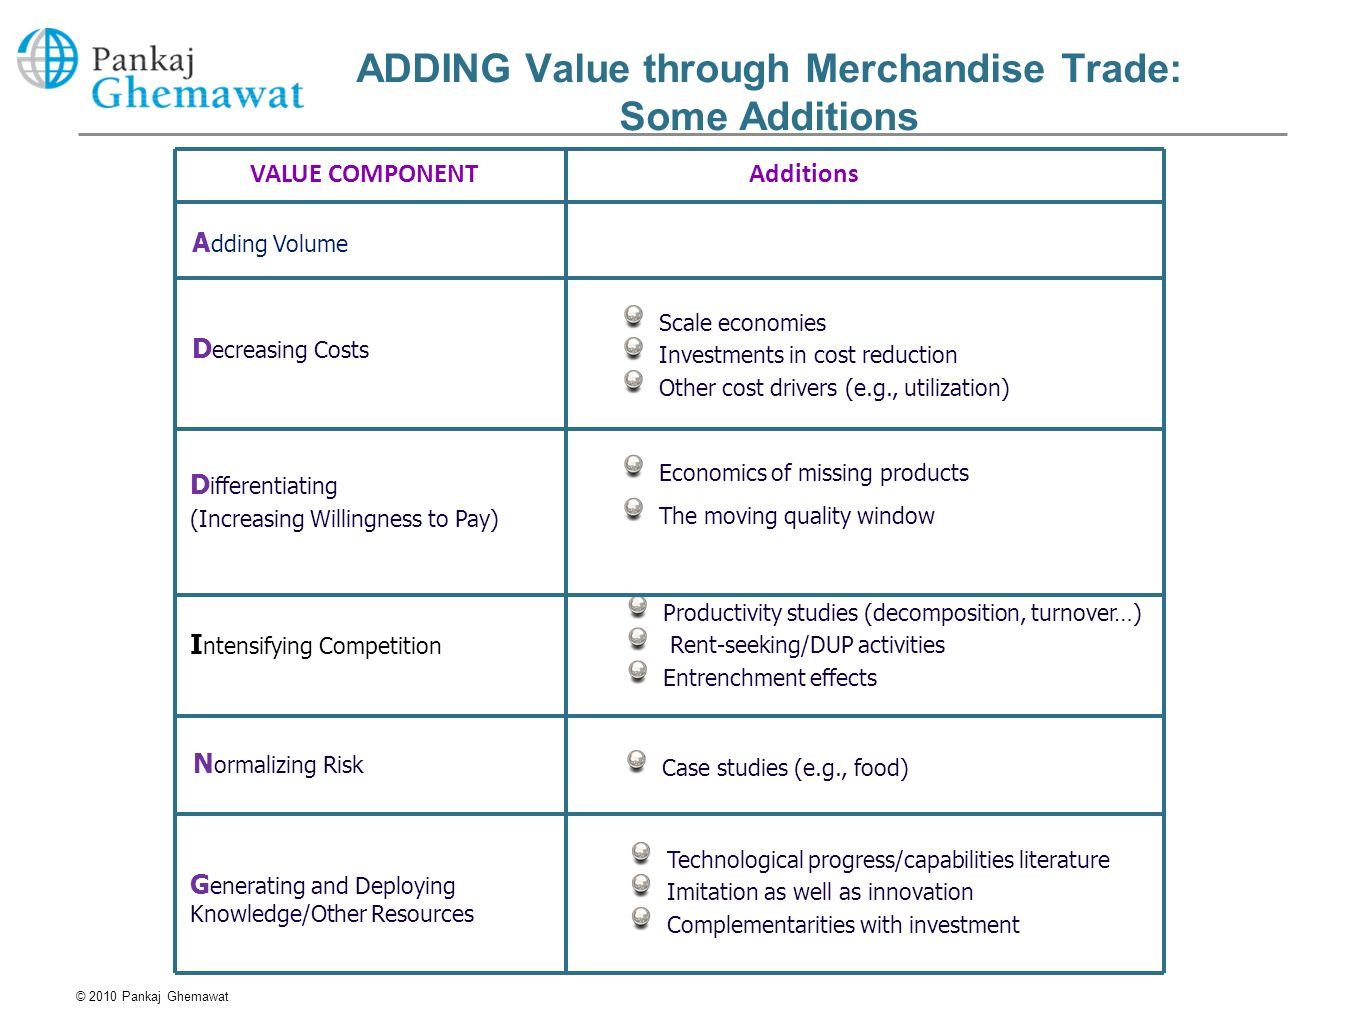 ADDING Value through Merchandise Trade: Some Additions